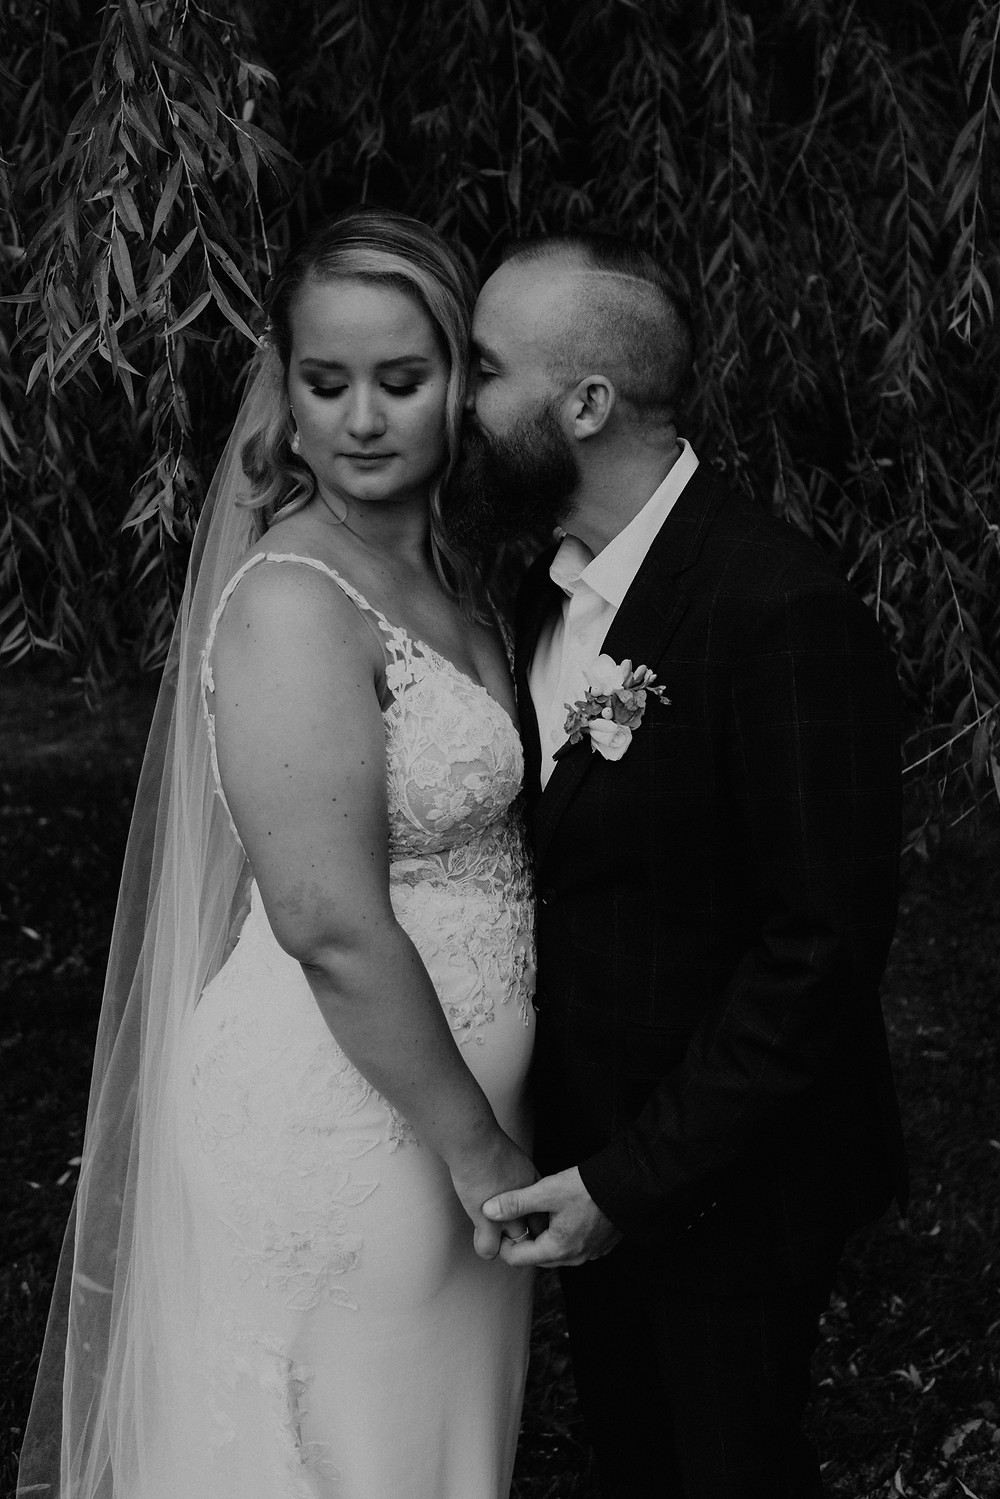 Black and white bridal portrait with bride and groom. Photographed by Nicole Leanne Photography.